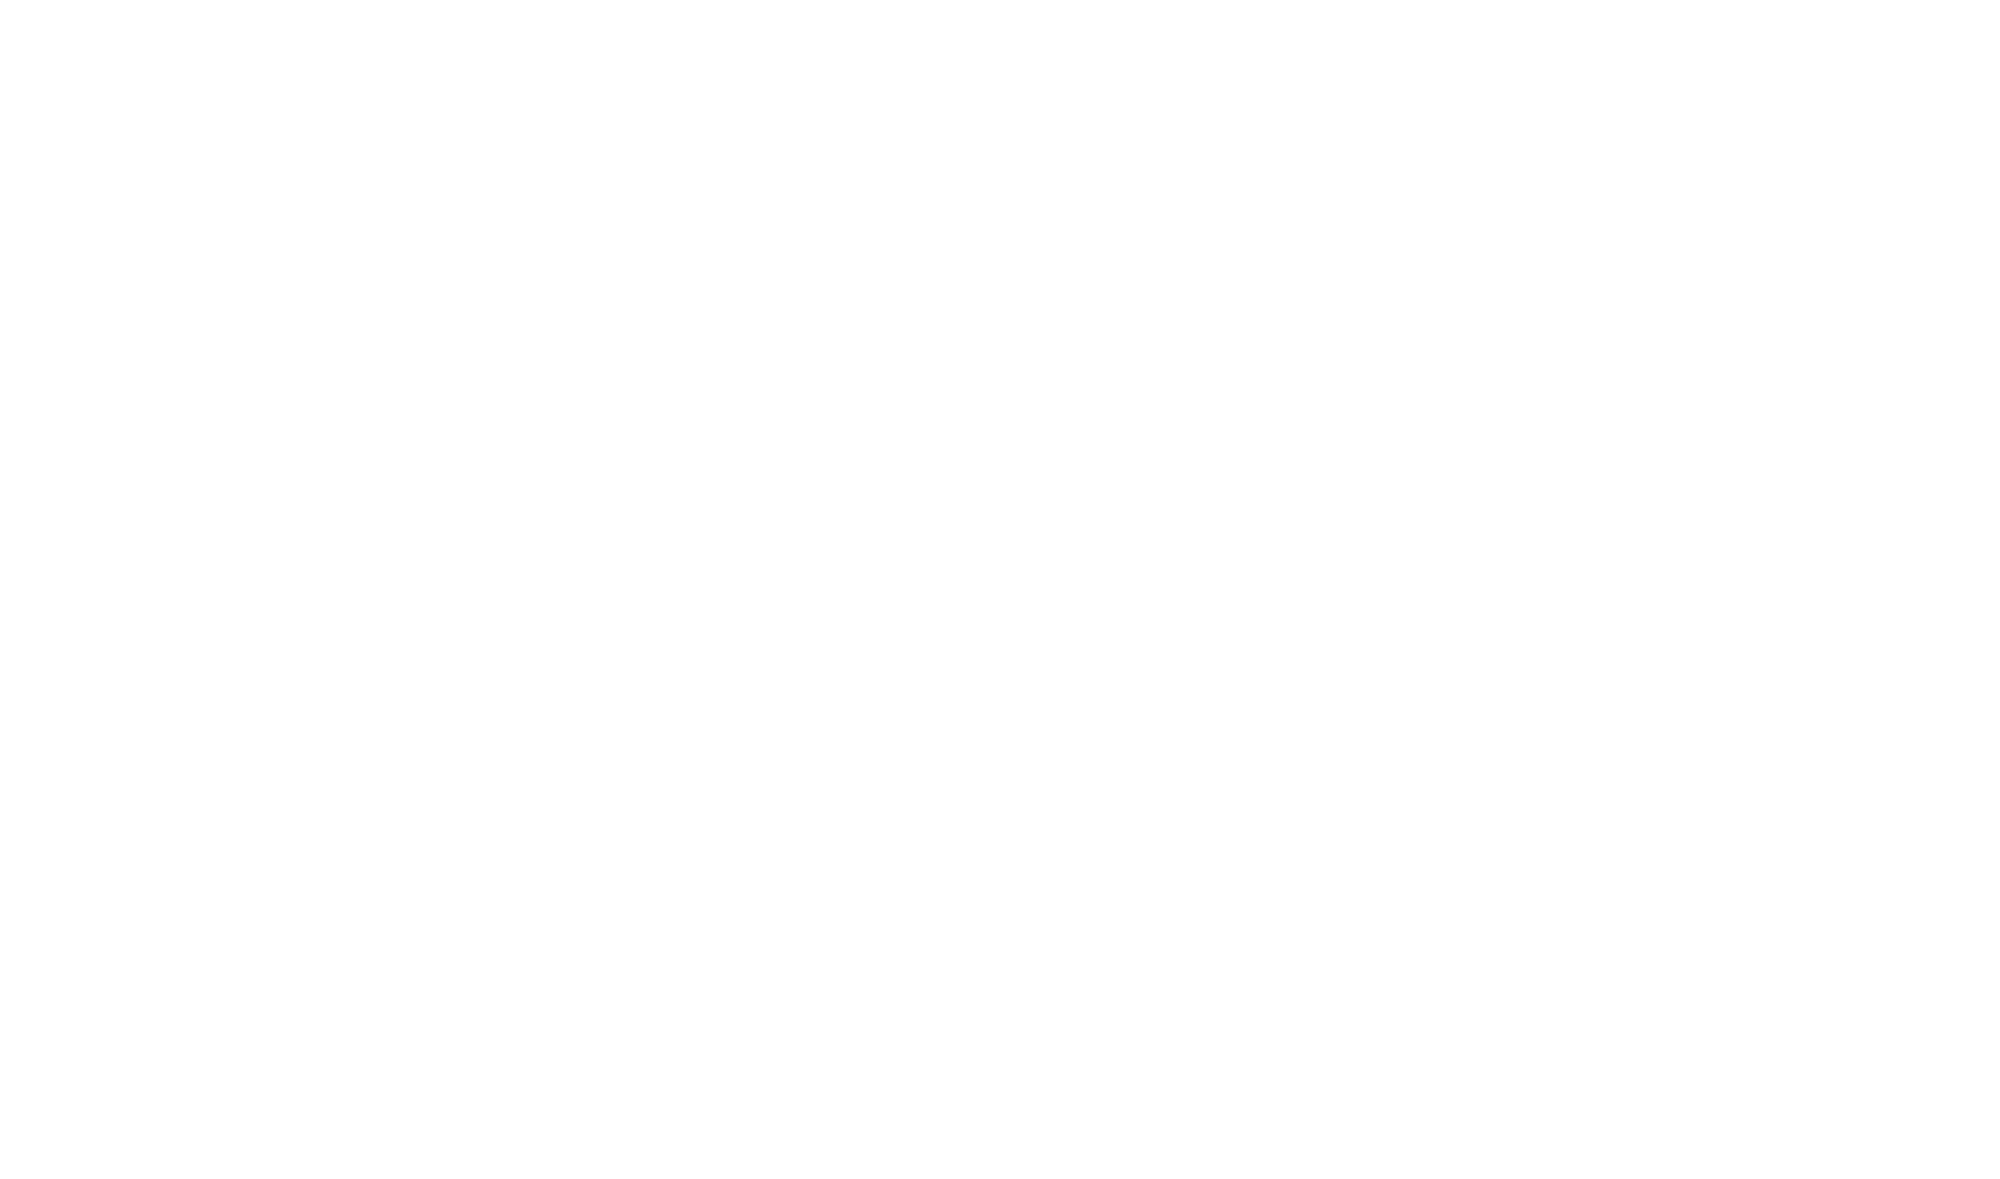 LopoLopo-logo-2white.png